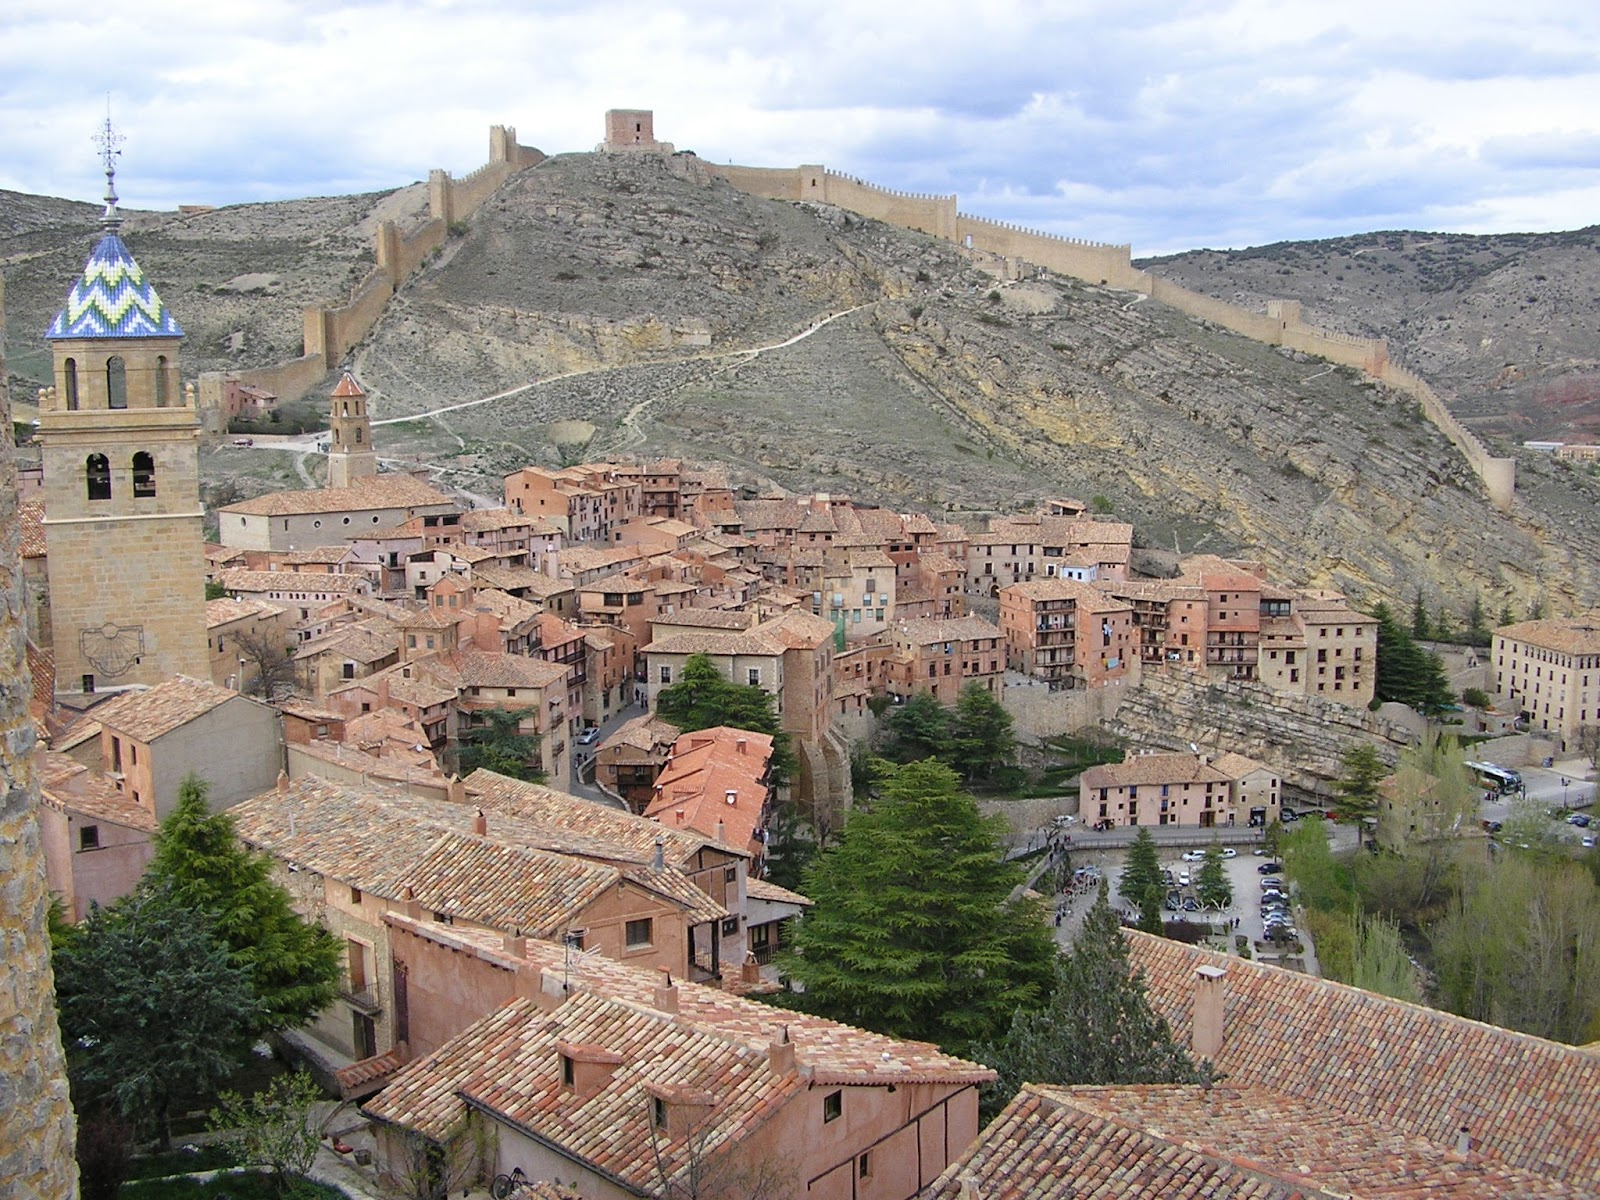 Albarracin Spain  city photos gallery : Queso Artesano de Albarracín Teruel : ALBARRACÍN, TERUEL